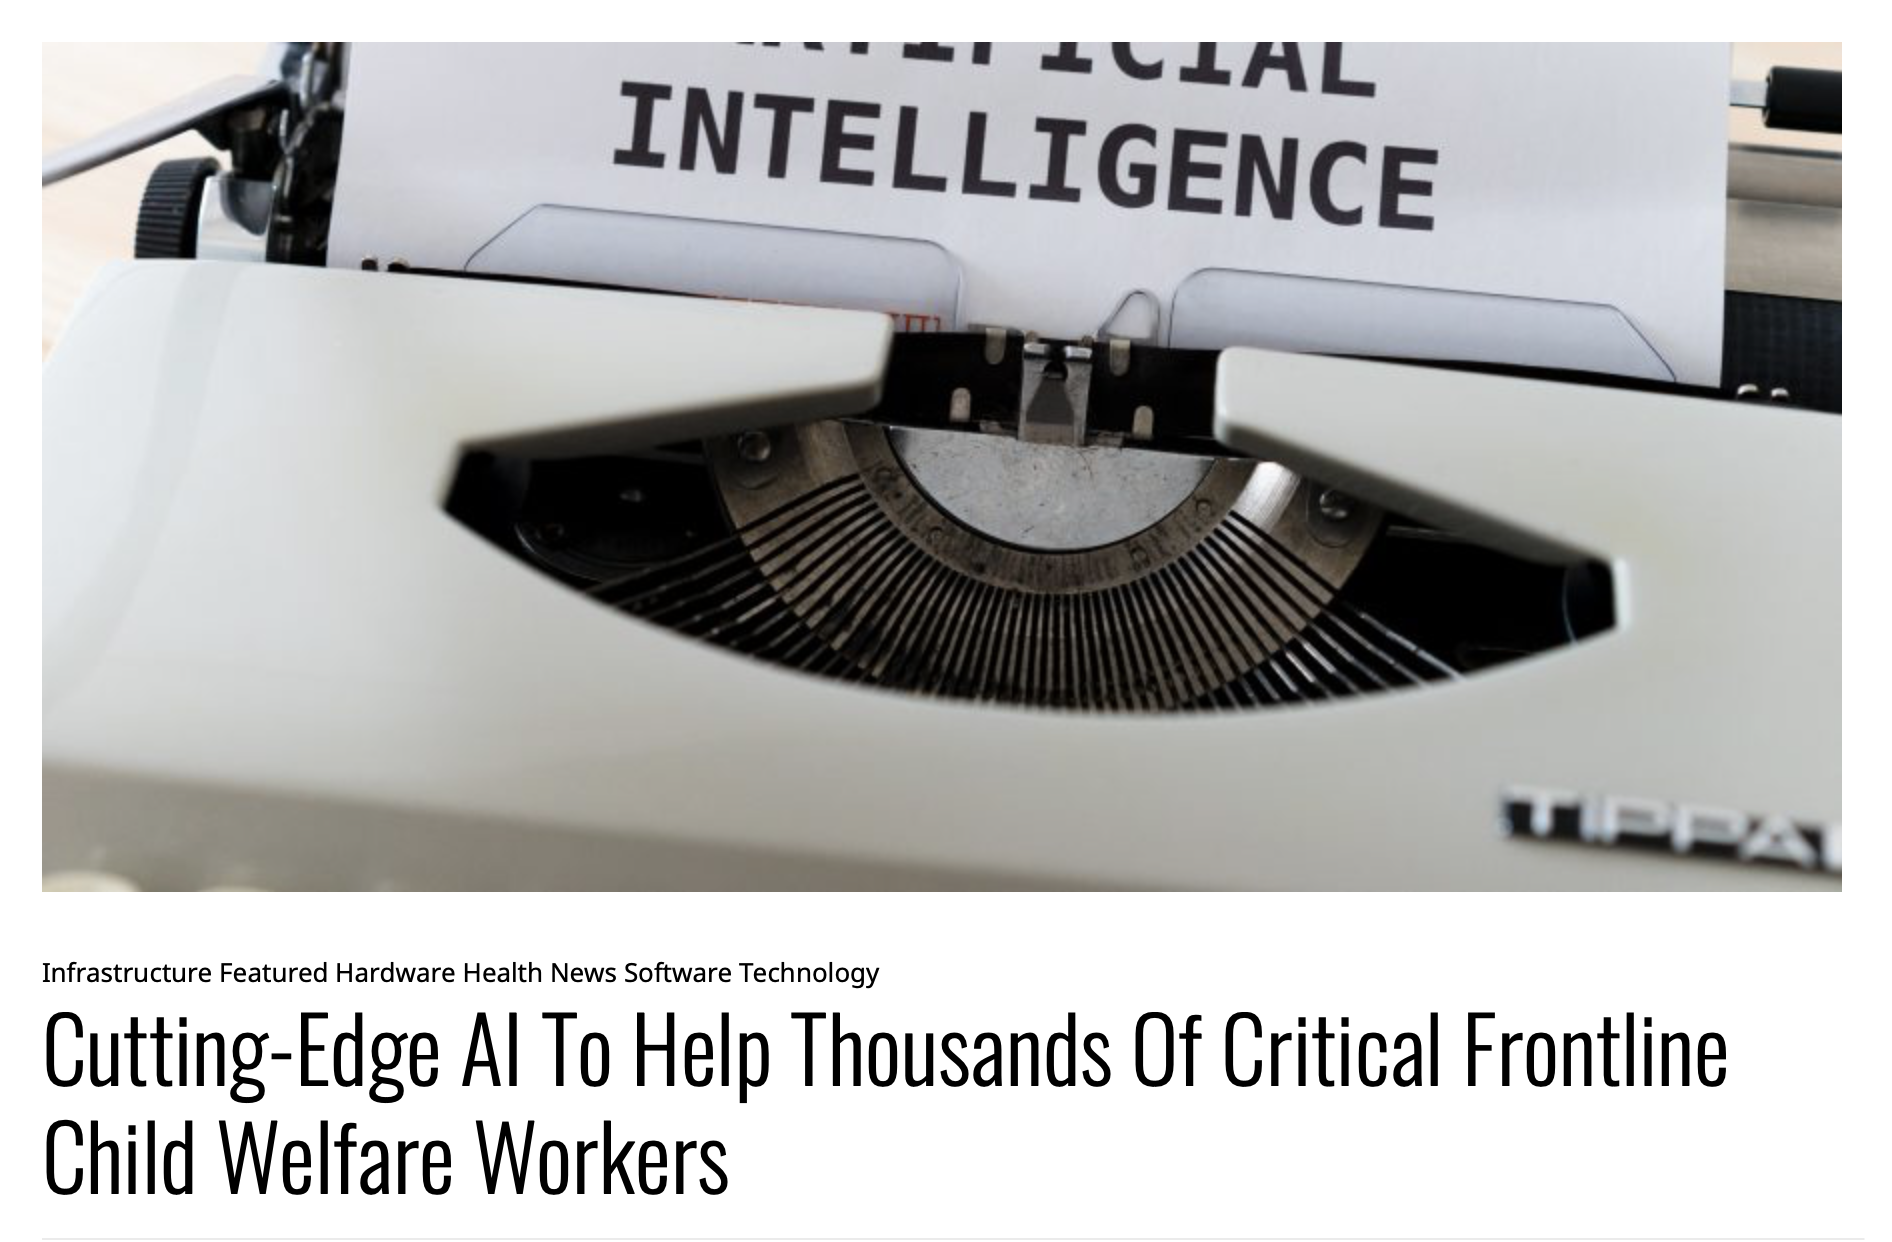 Cutting-Edge AI To Help Thousands Of Critical Frontline Child Welfare Workers